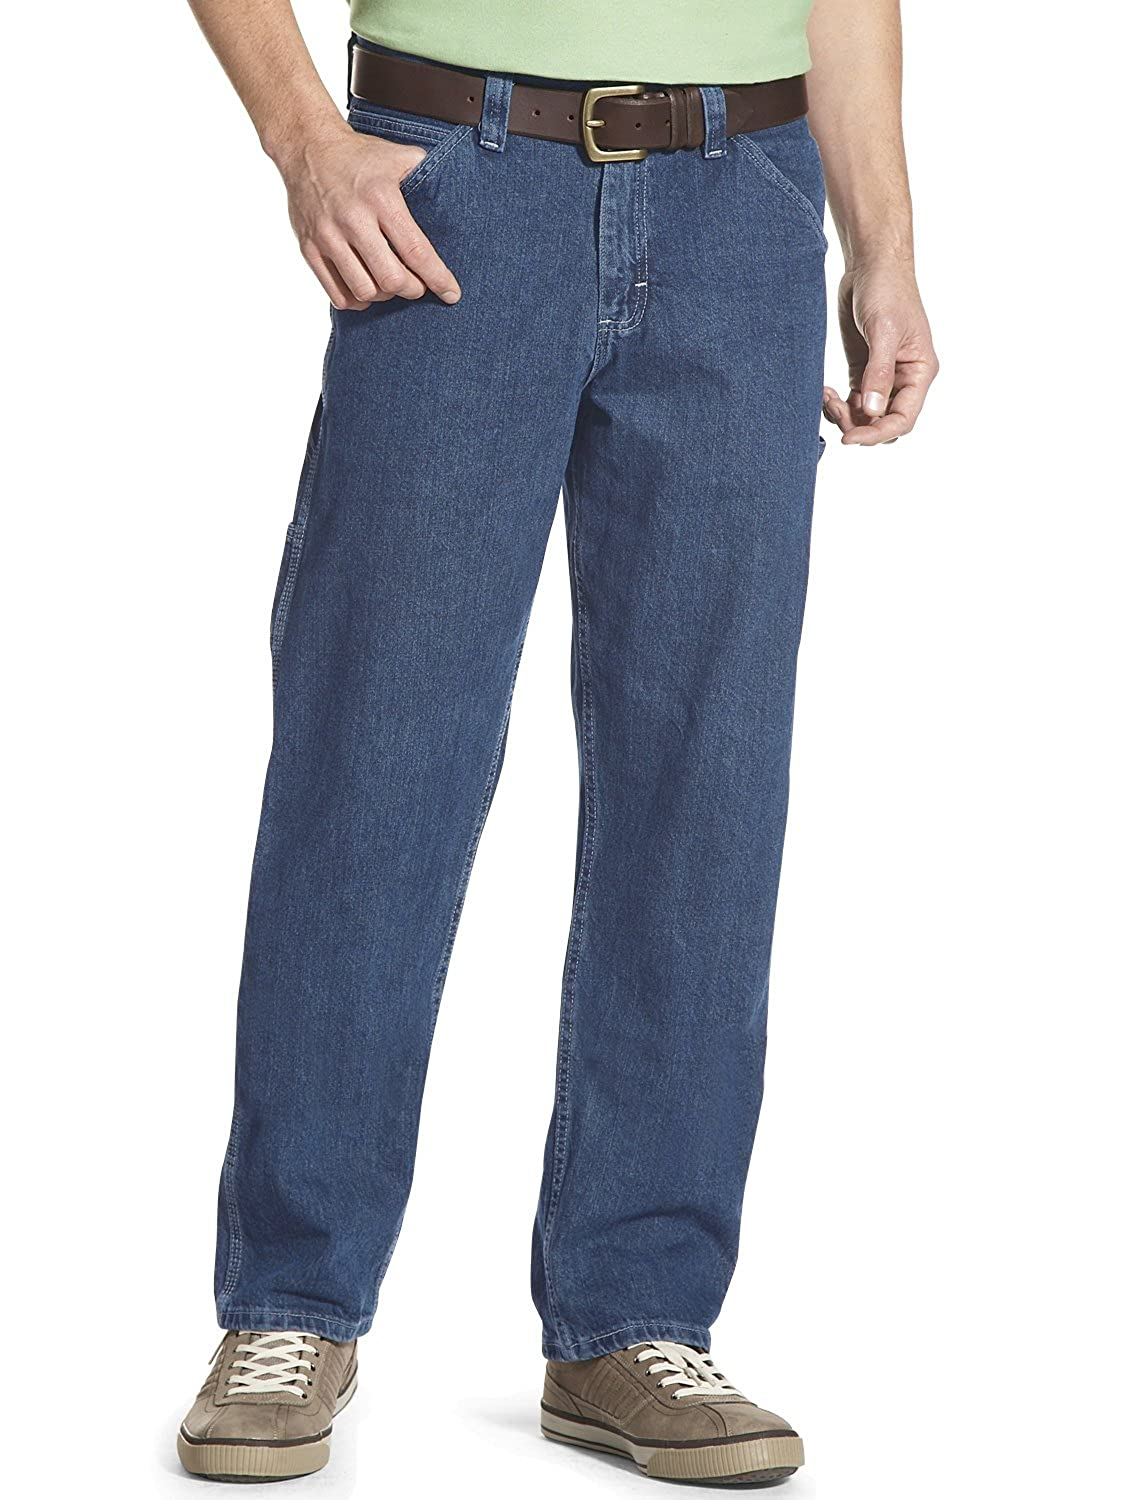 LEE Men's Big & Tall Carpenter Jean Lee Men's Sportswear 21079